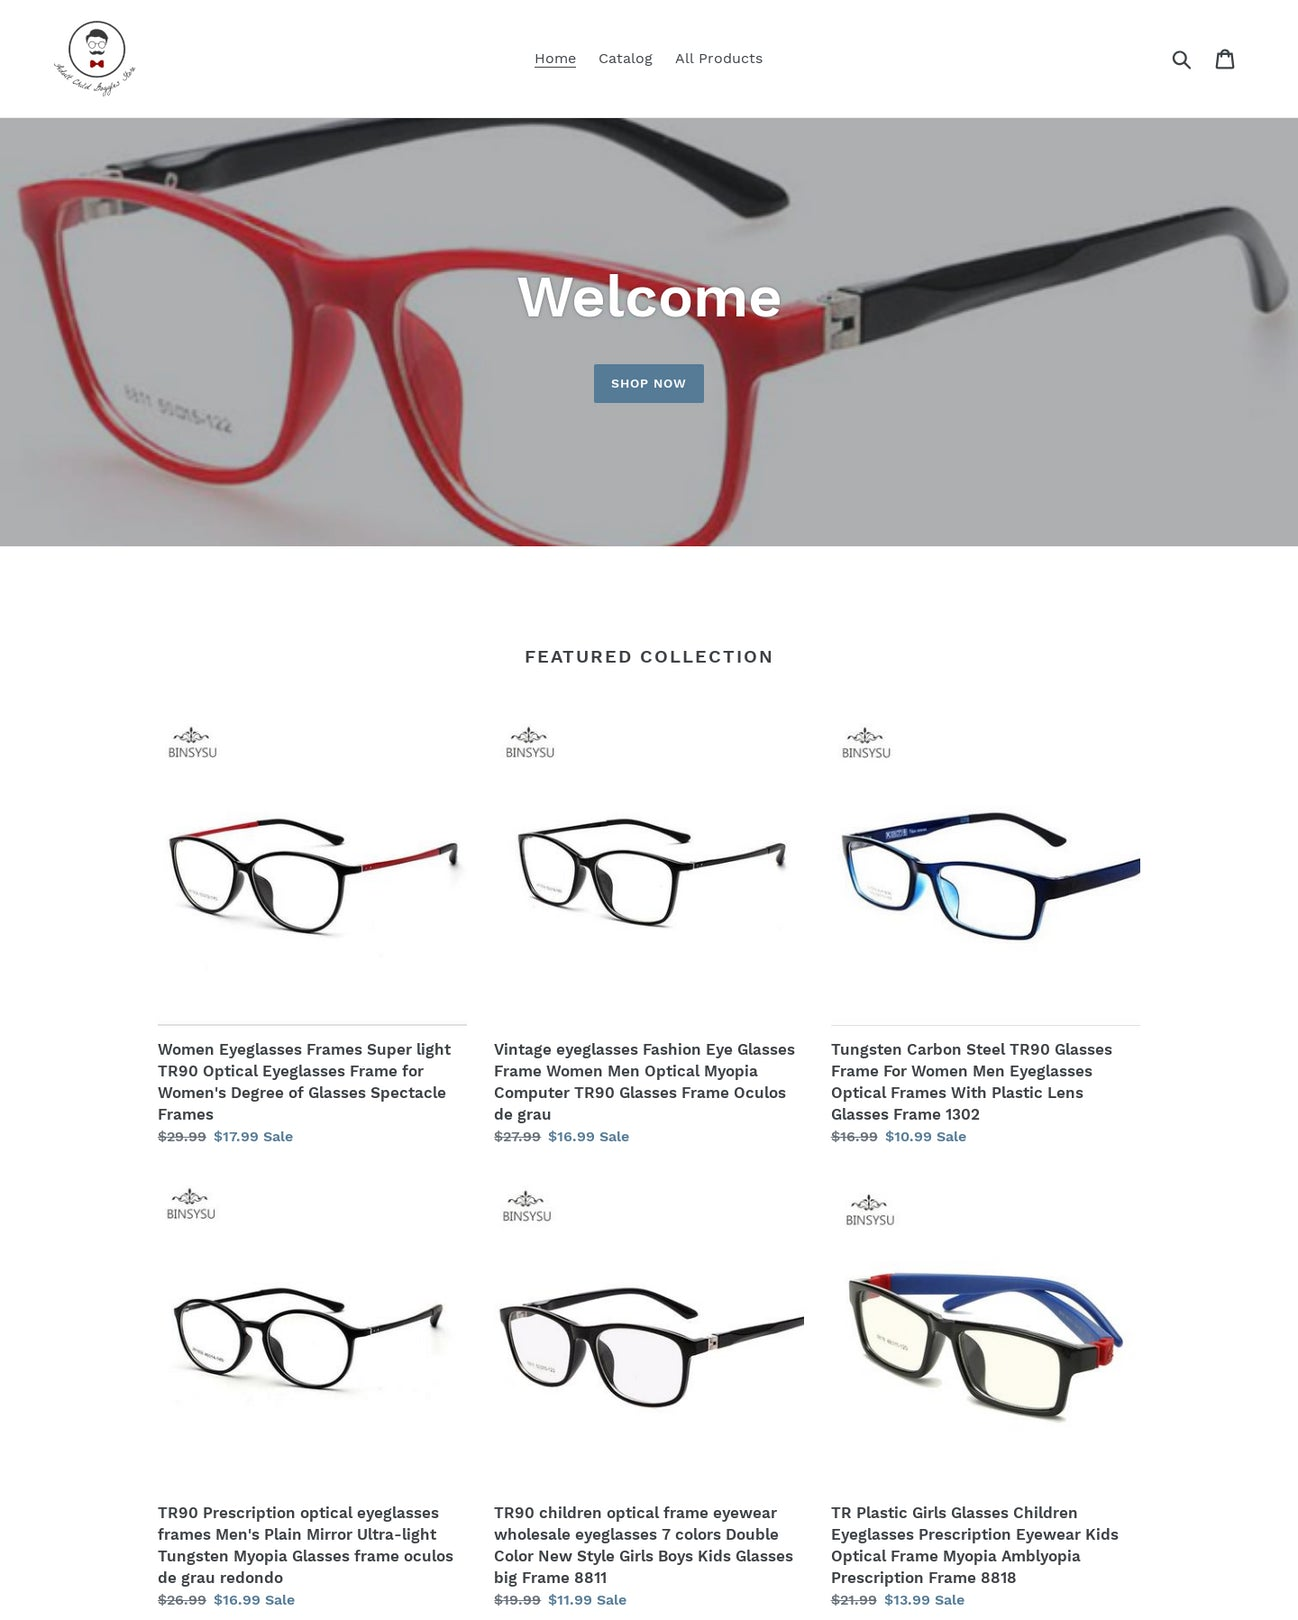 65939095c6c0 ... Double Cosmo Glasses Frames 33cao Info. Adultchildgoggles Store For  Sale Buy An Online Business